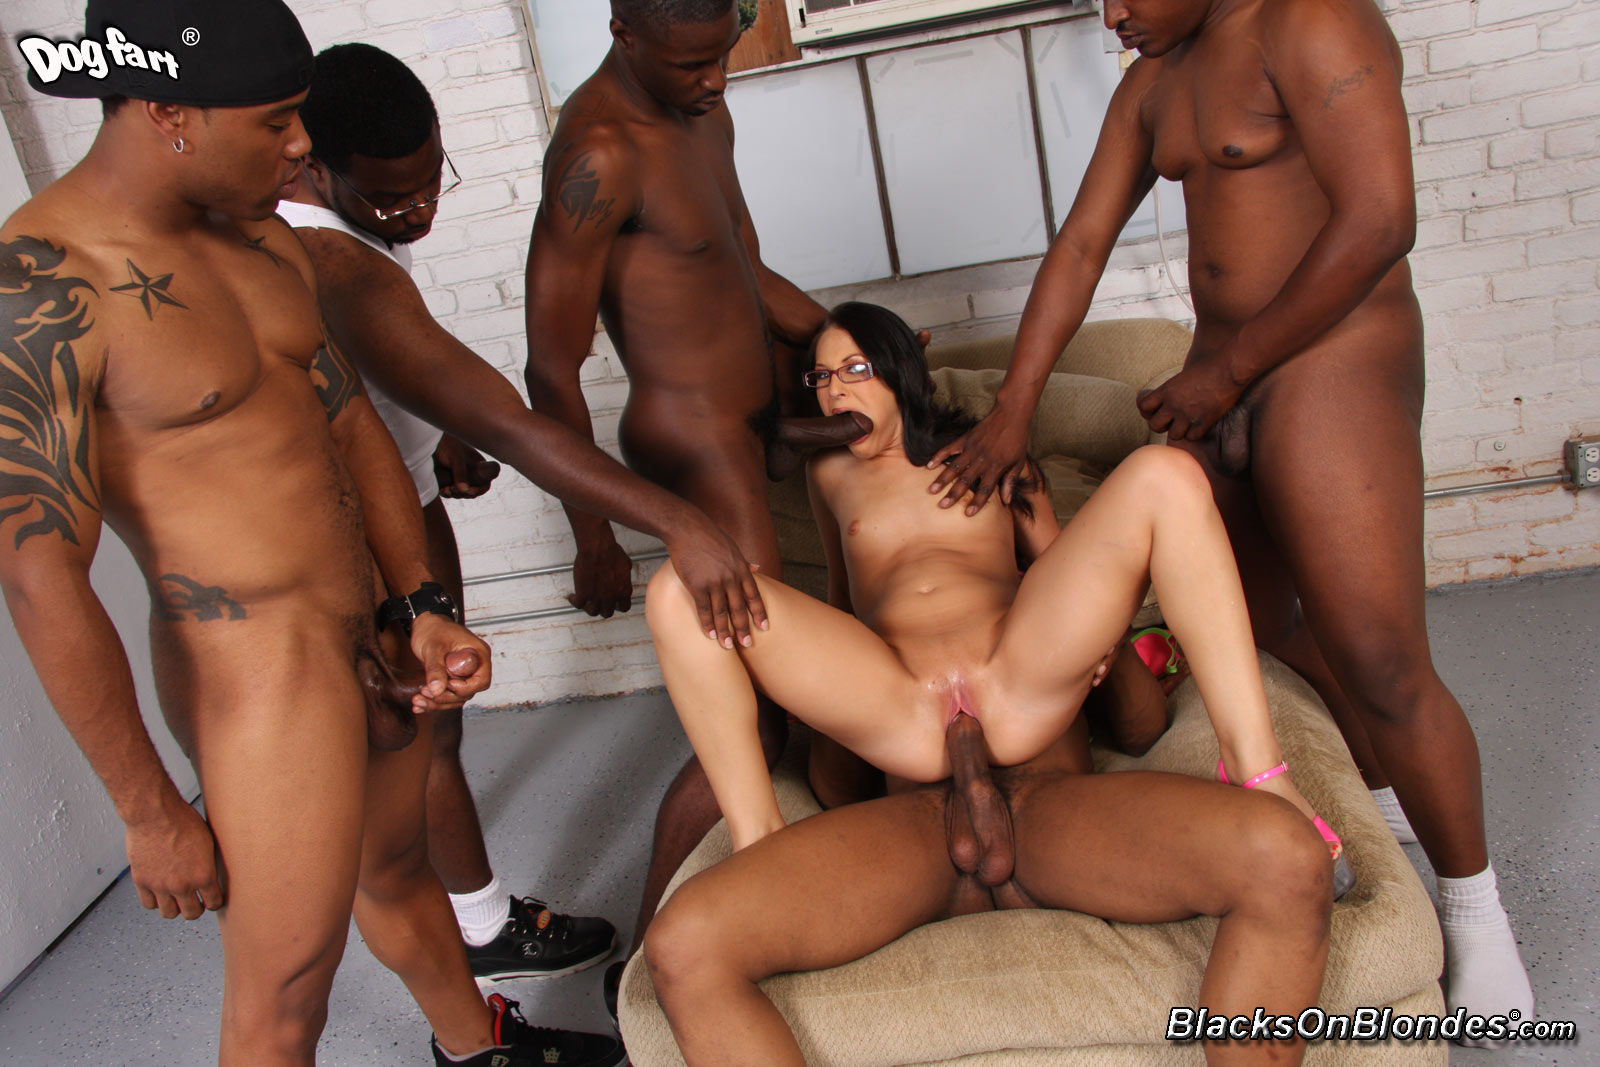 She can Amateur gang bang fuck Hot!